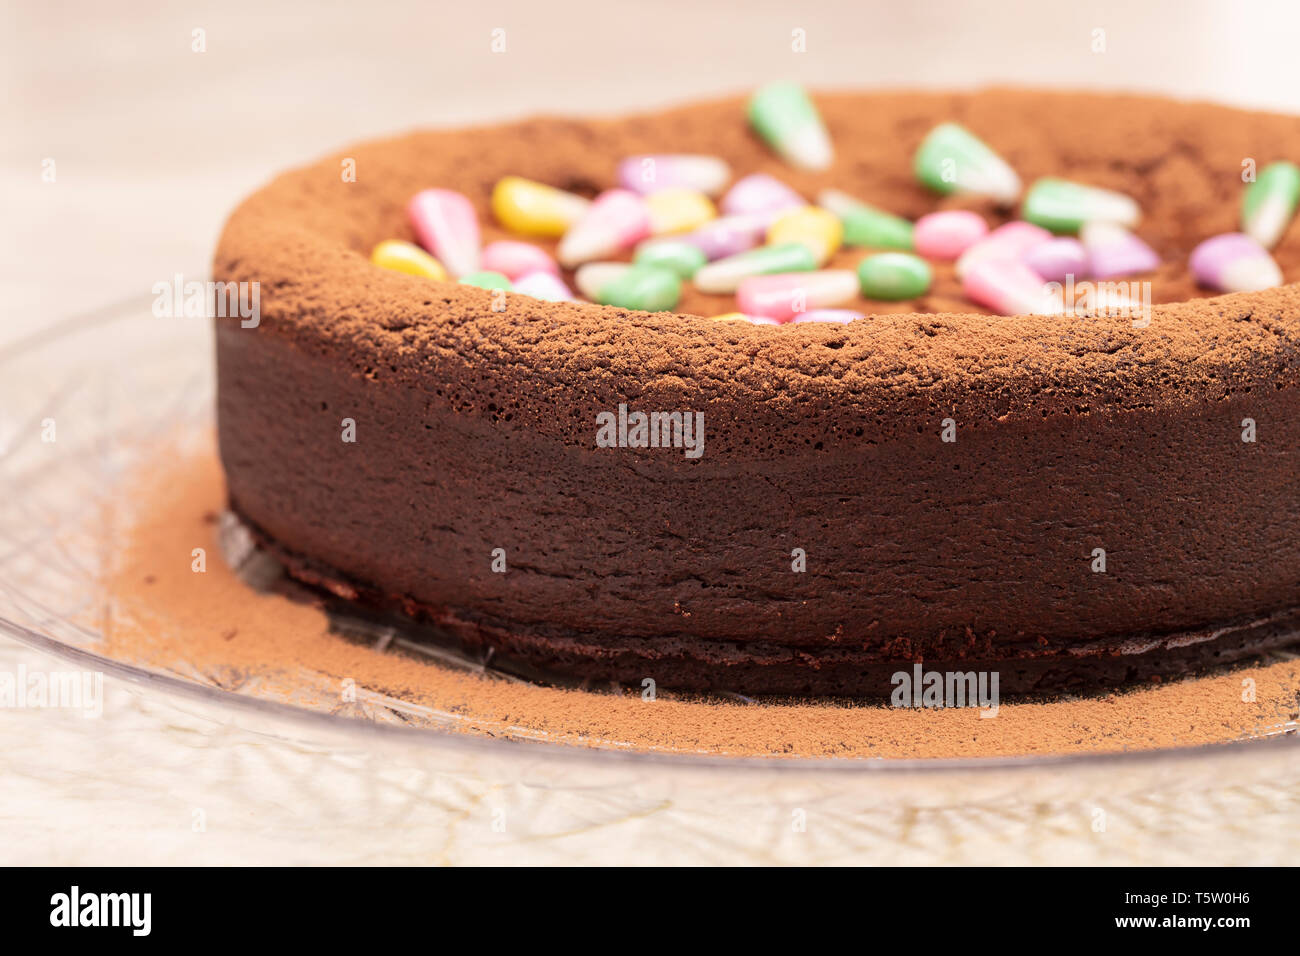 Flourless Dark Chocolate Cake With Pastel Colored Candy Corn On Top On A Clear Serving Plate Stock Photo Alamy